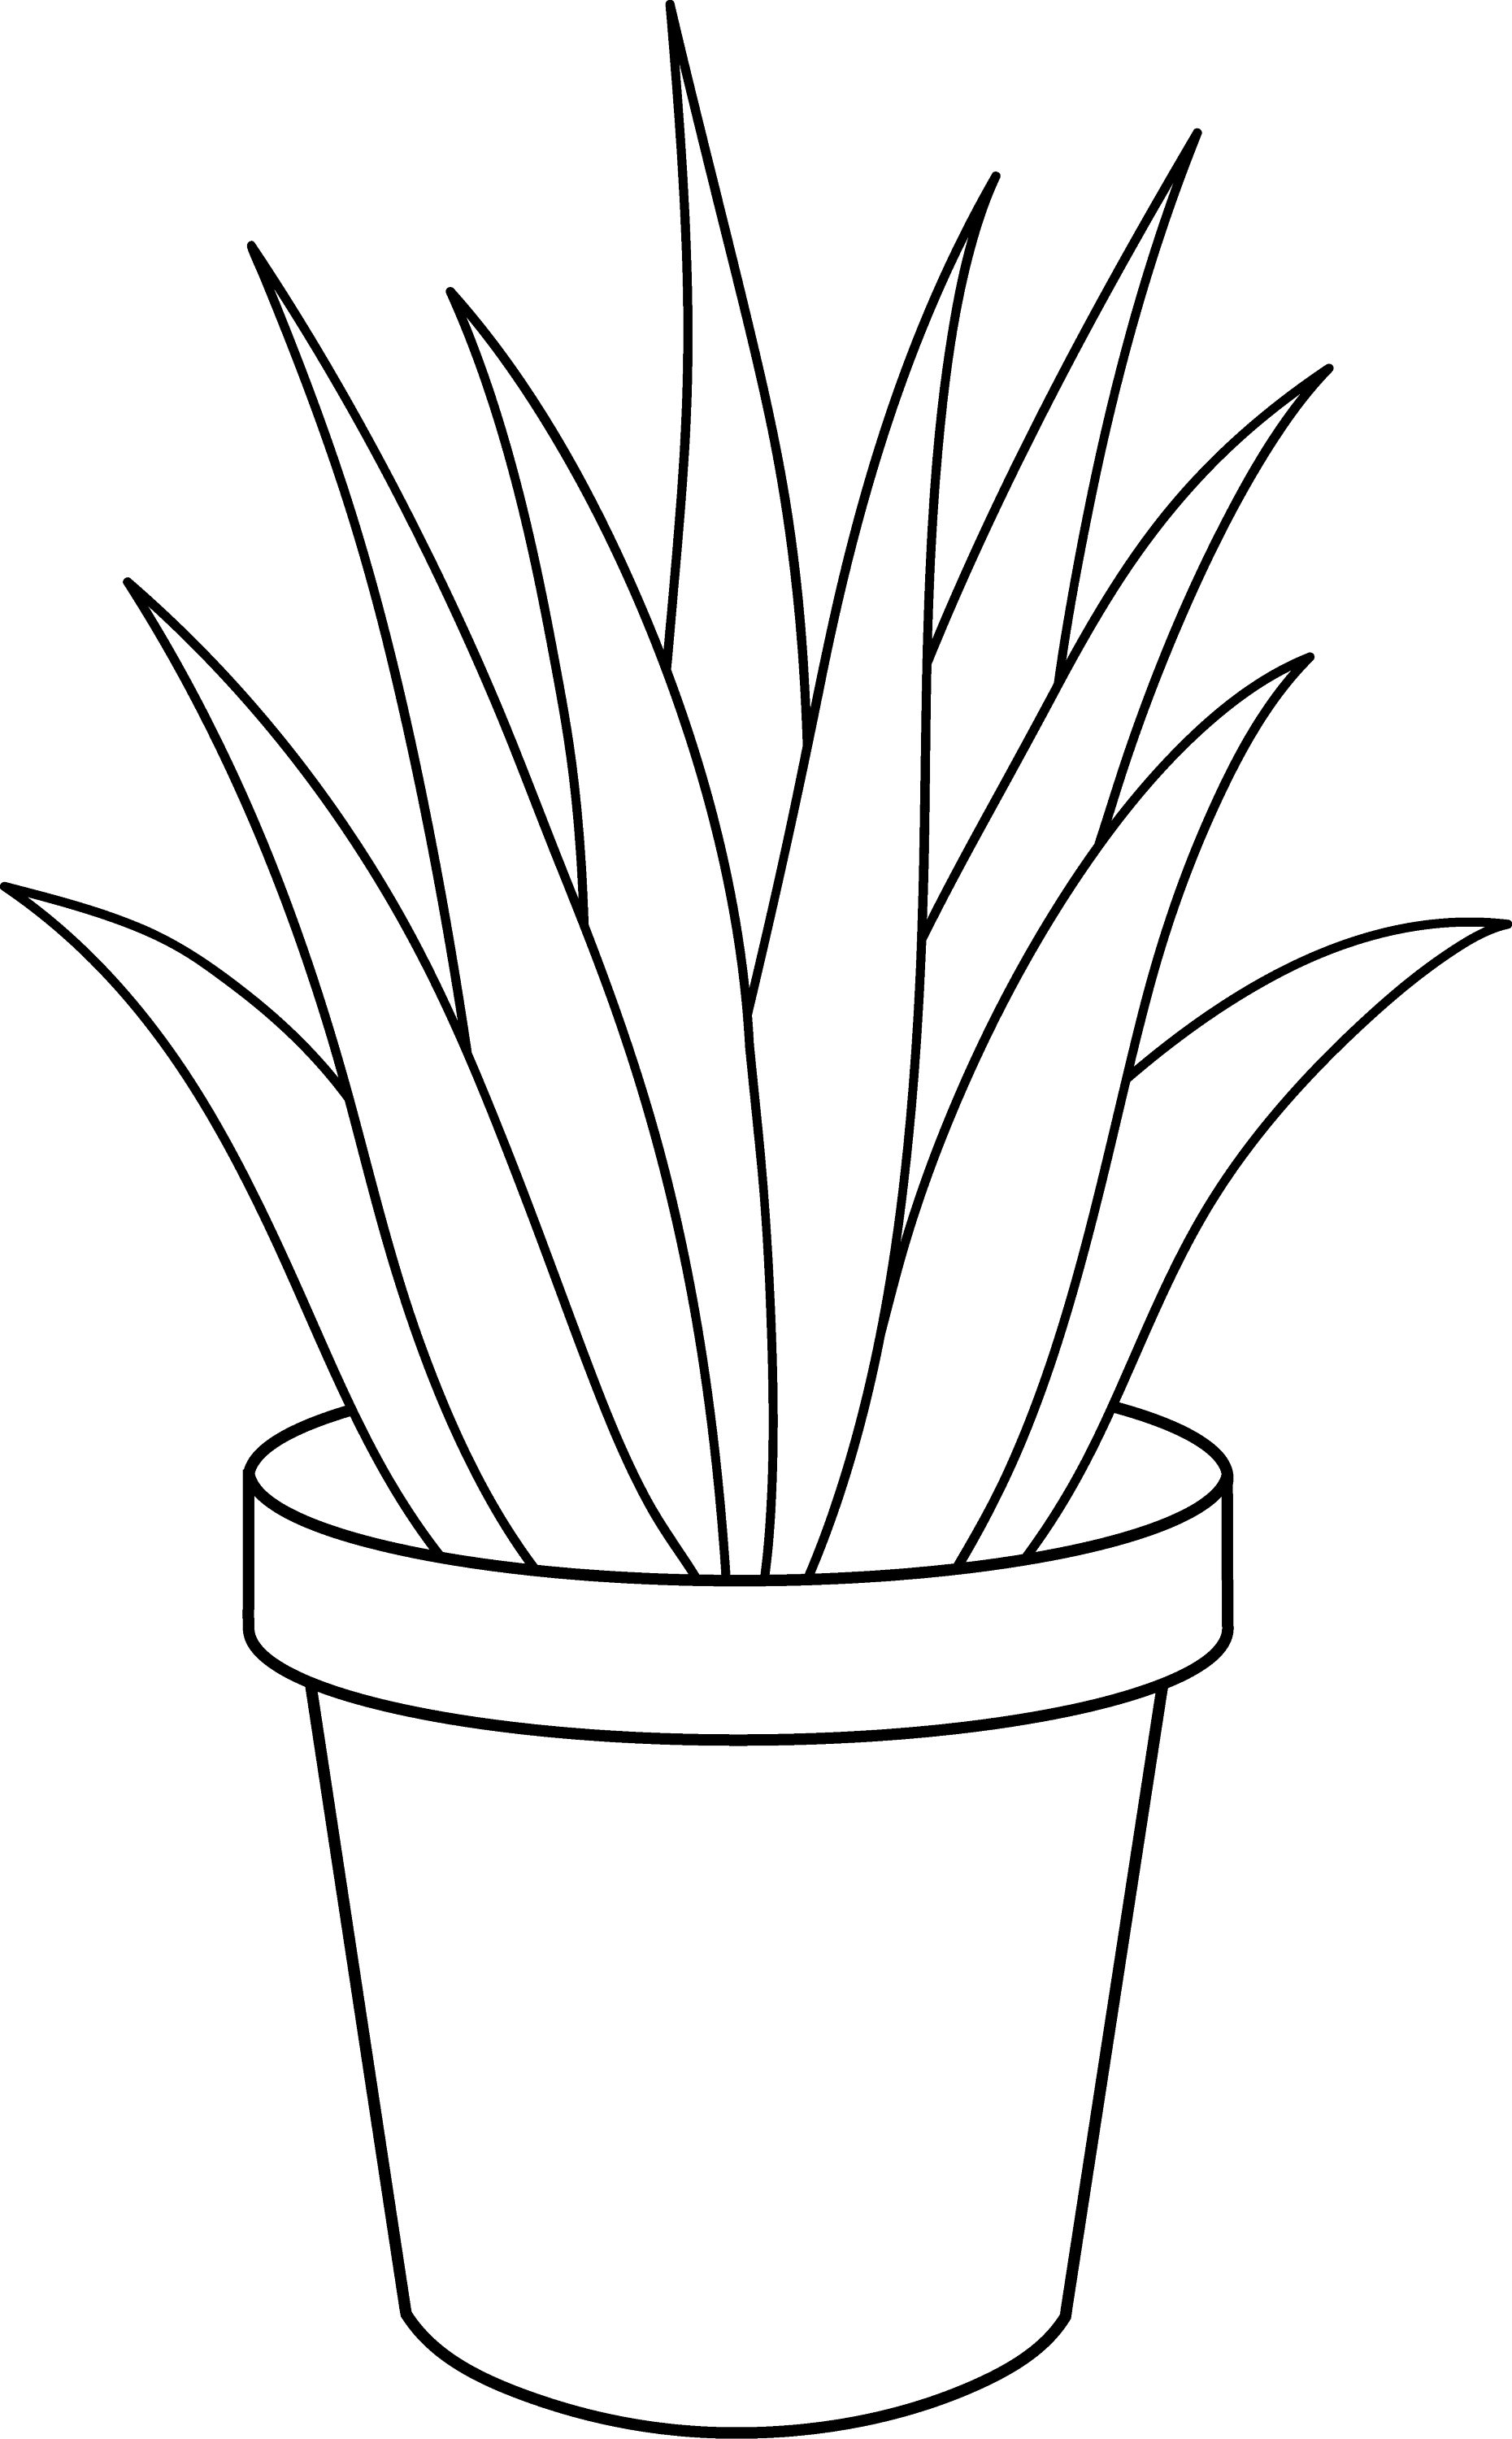 Line Drawing Plants : Aloe vera plant line art free clip